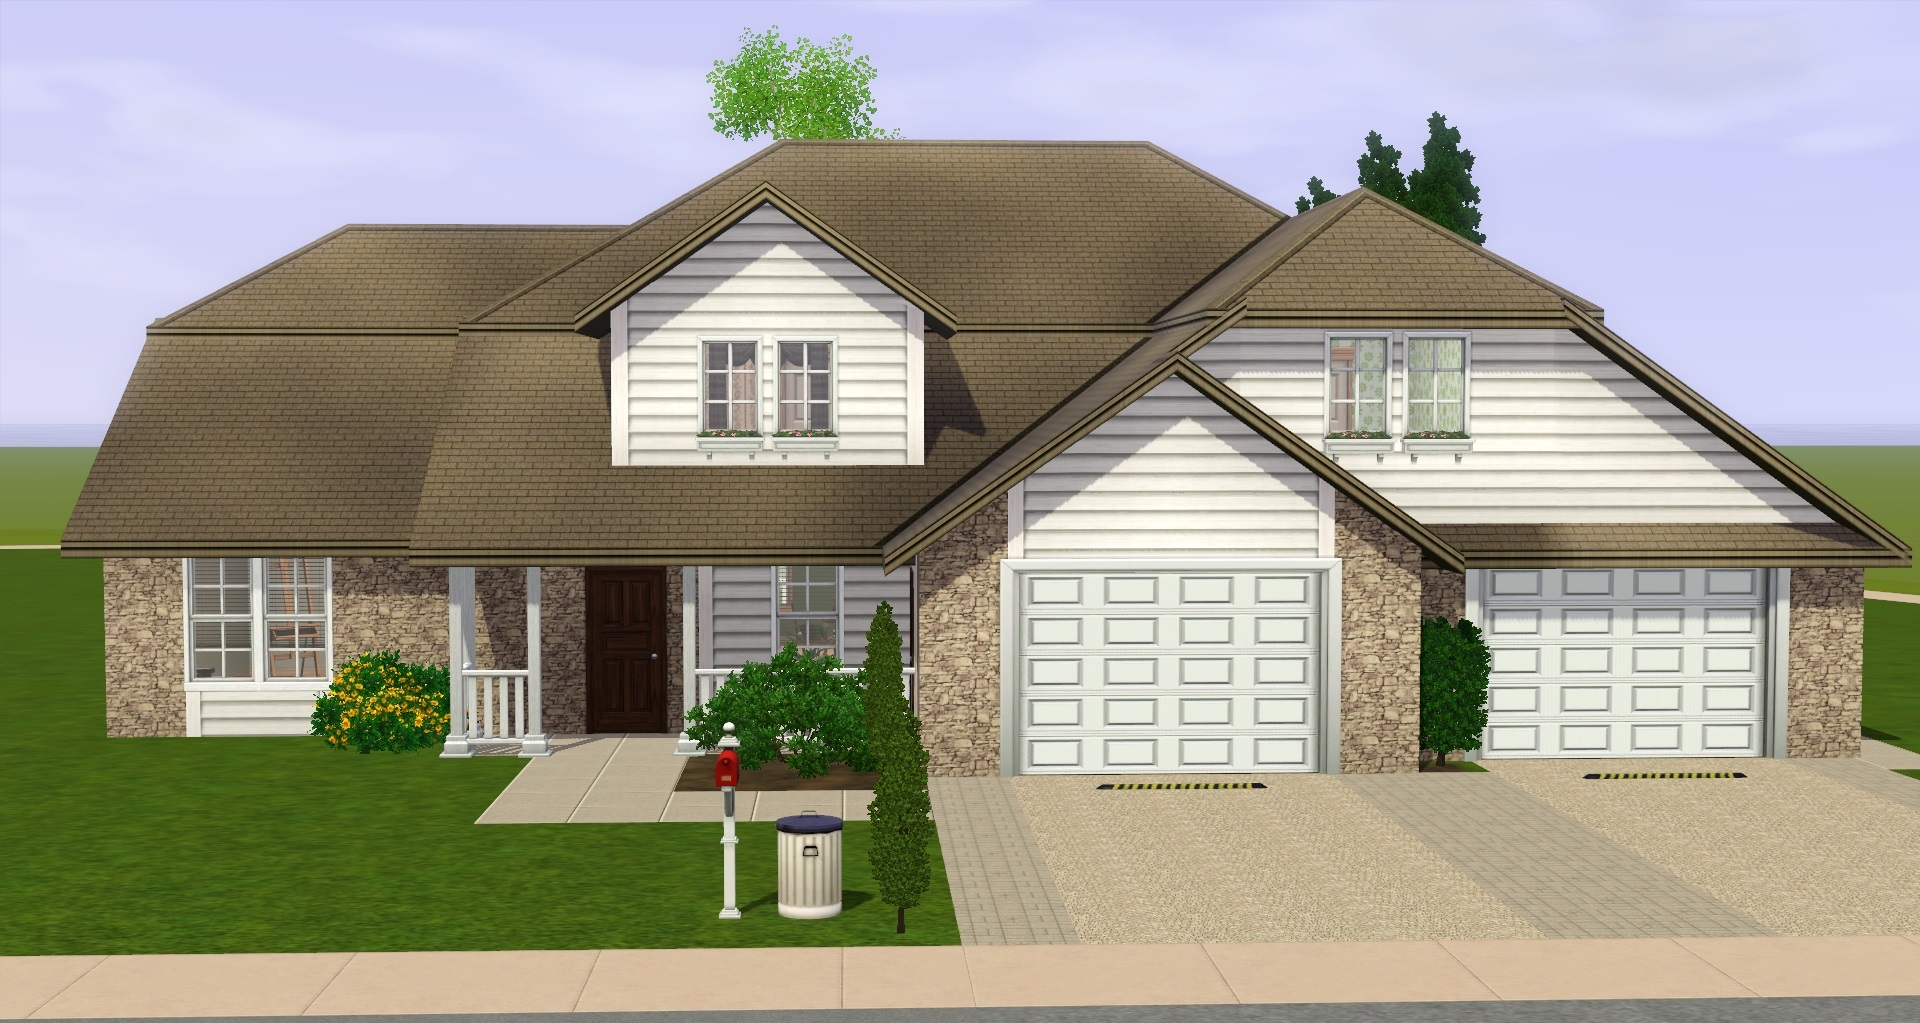 Mod the sims midwestern home for Jerkinhead roof construction